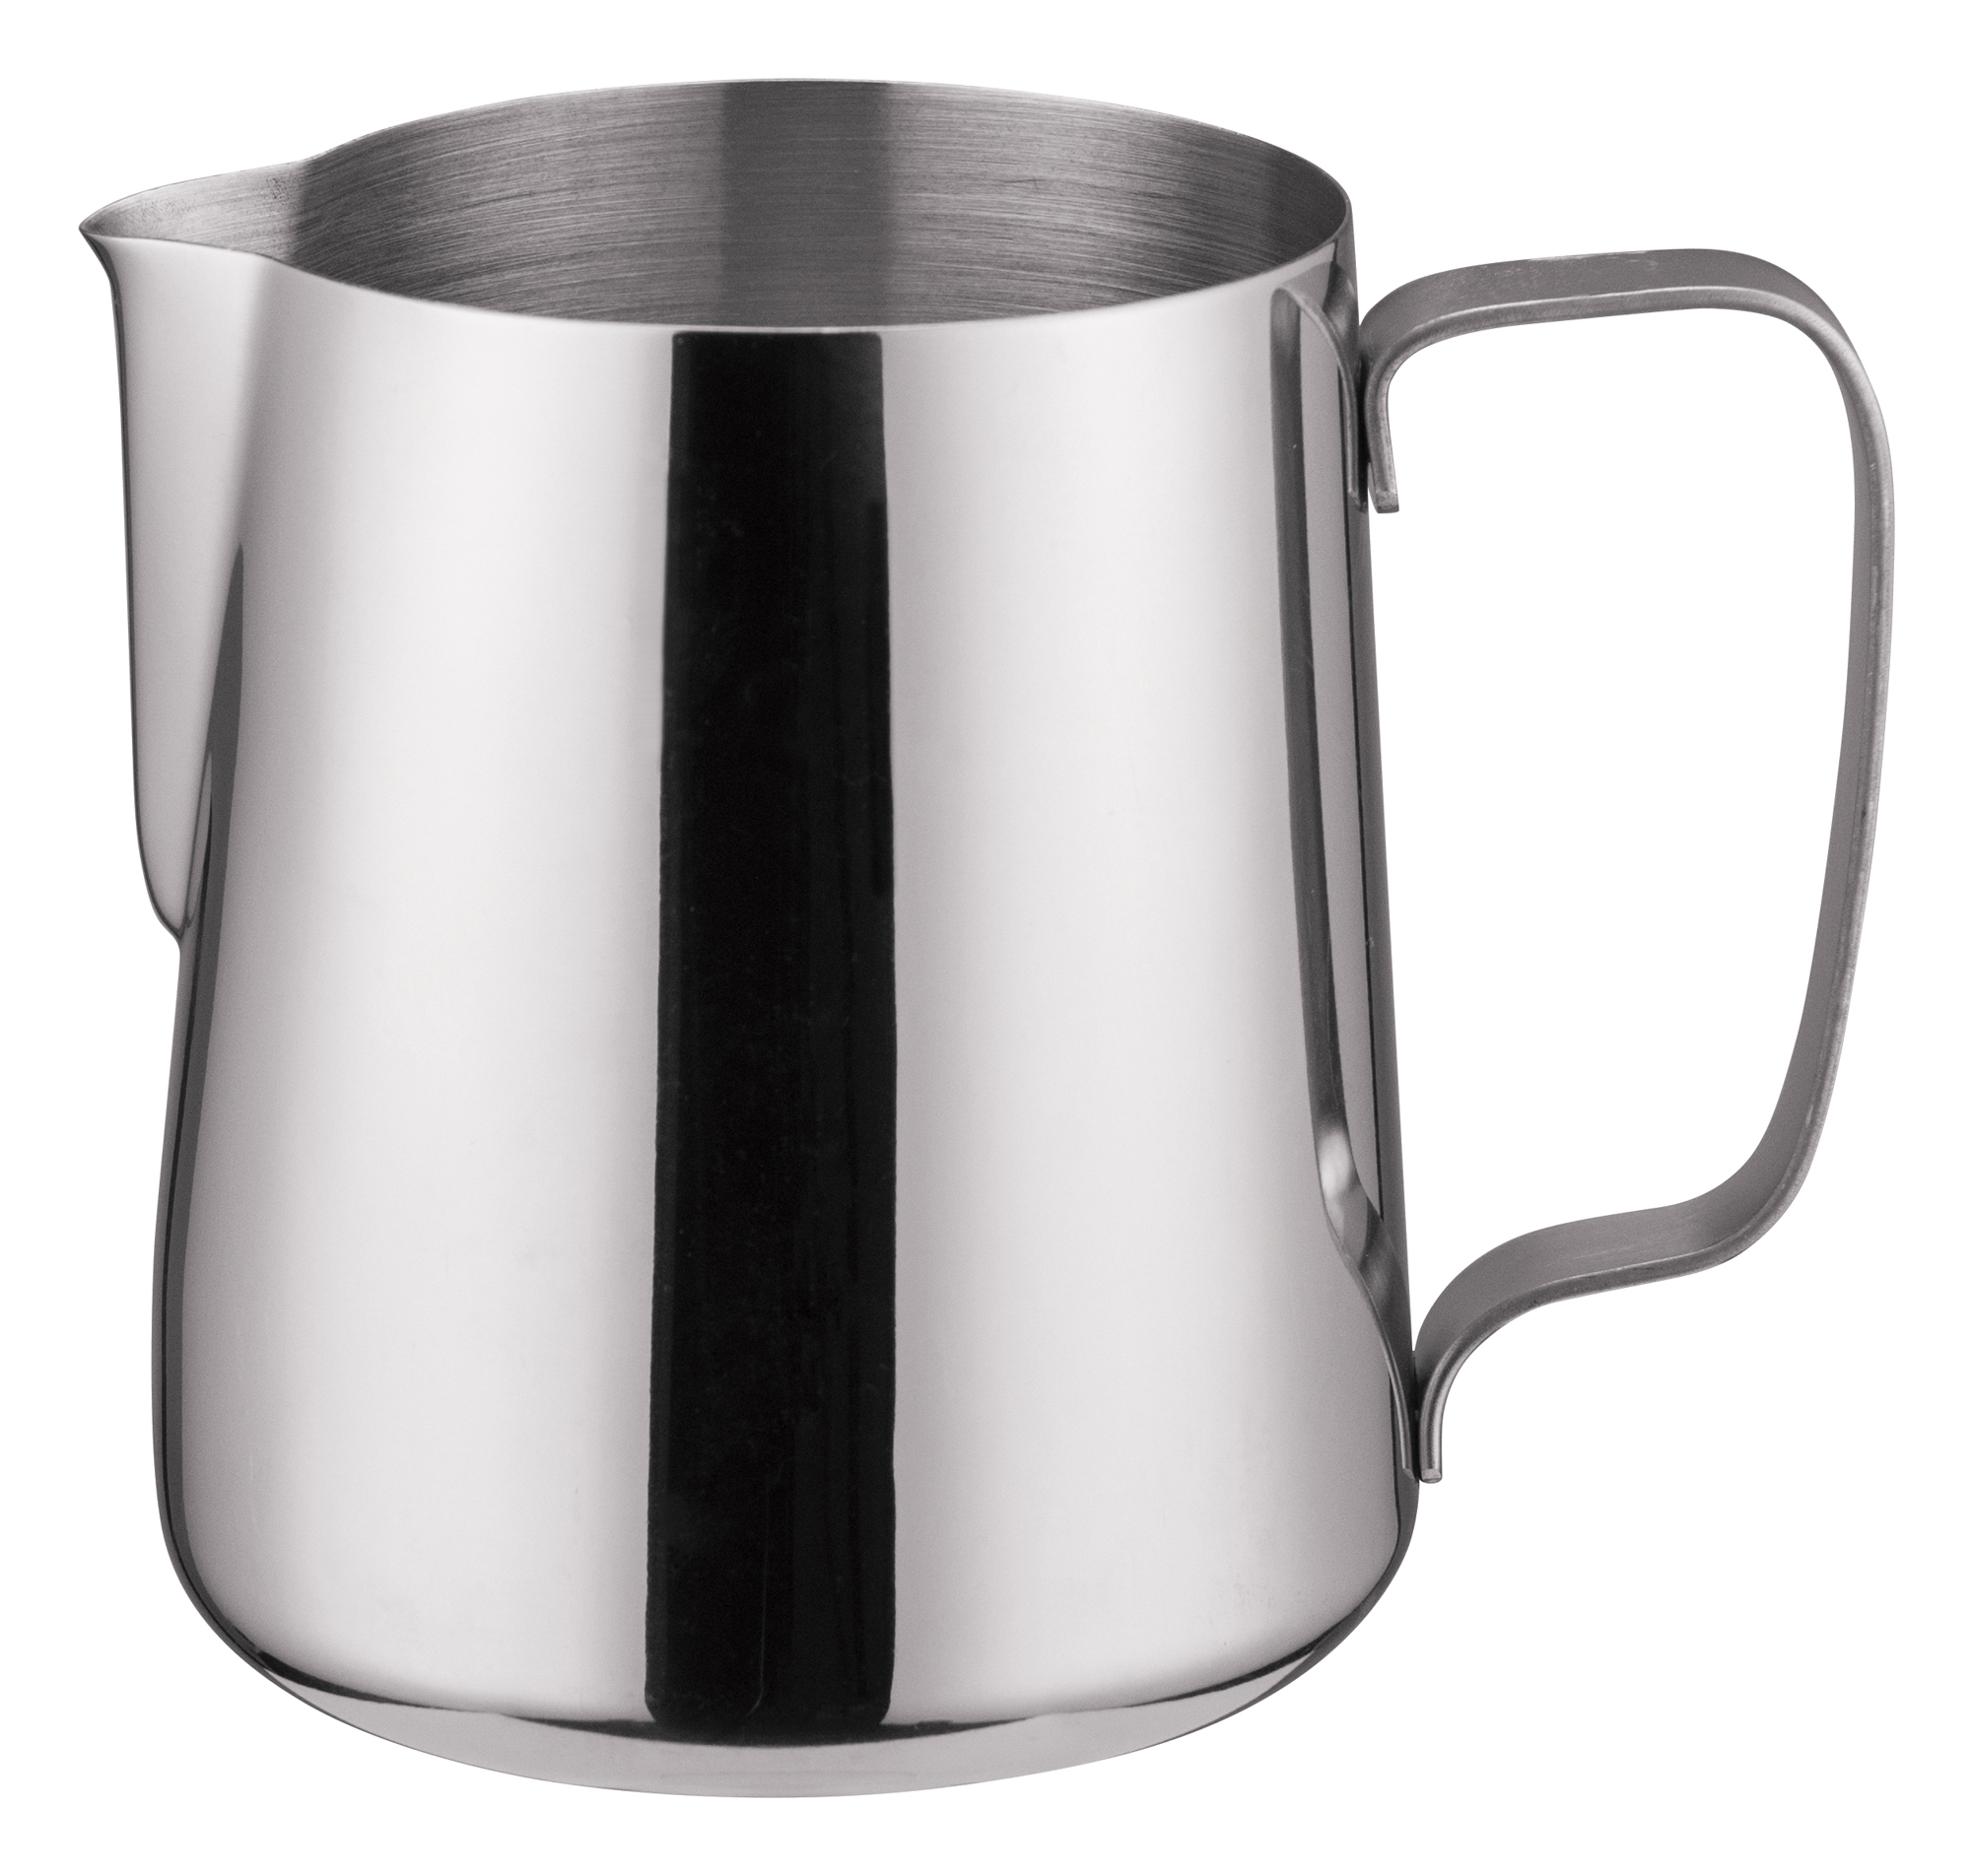 Winco WP-33 pitchers-stainless steel